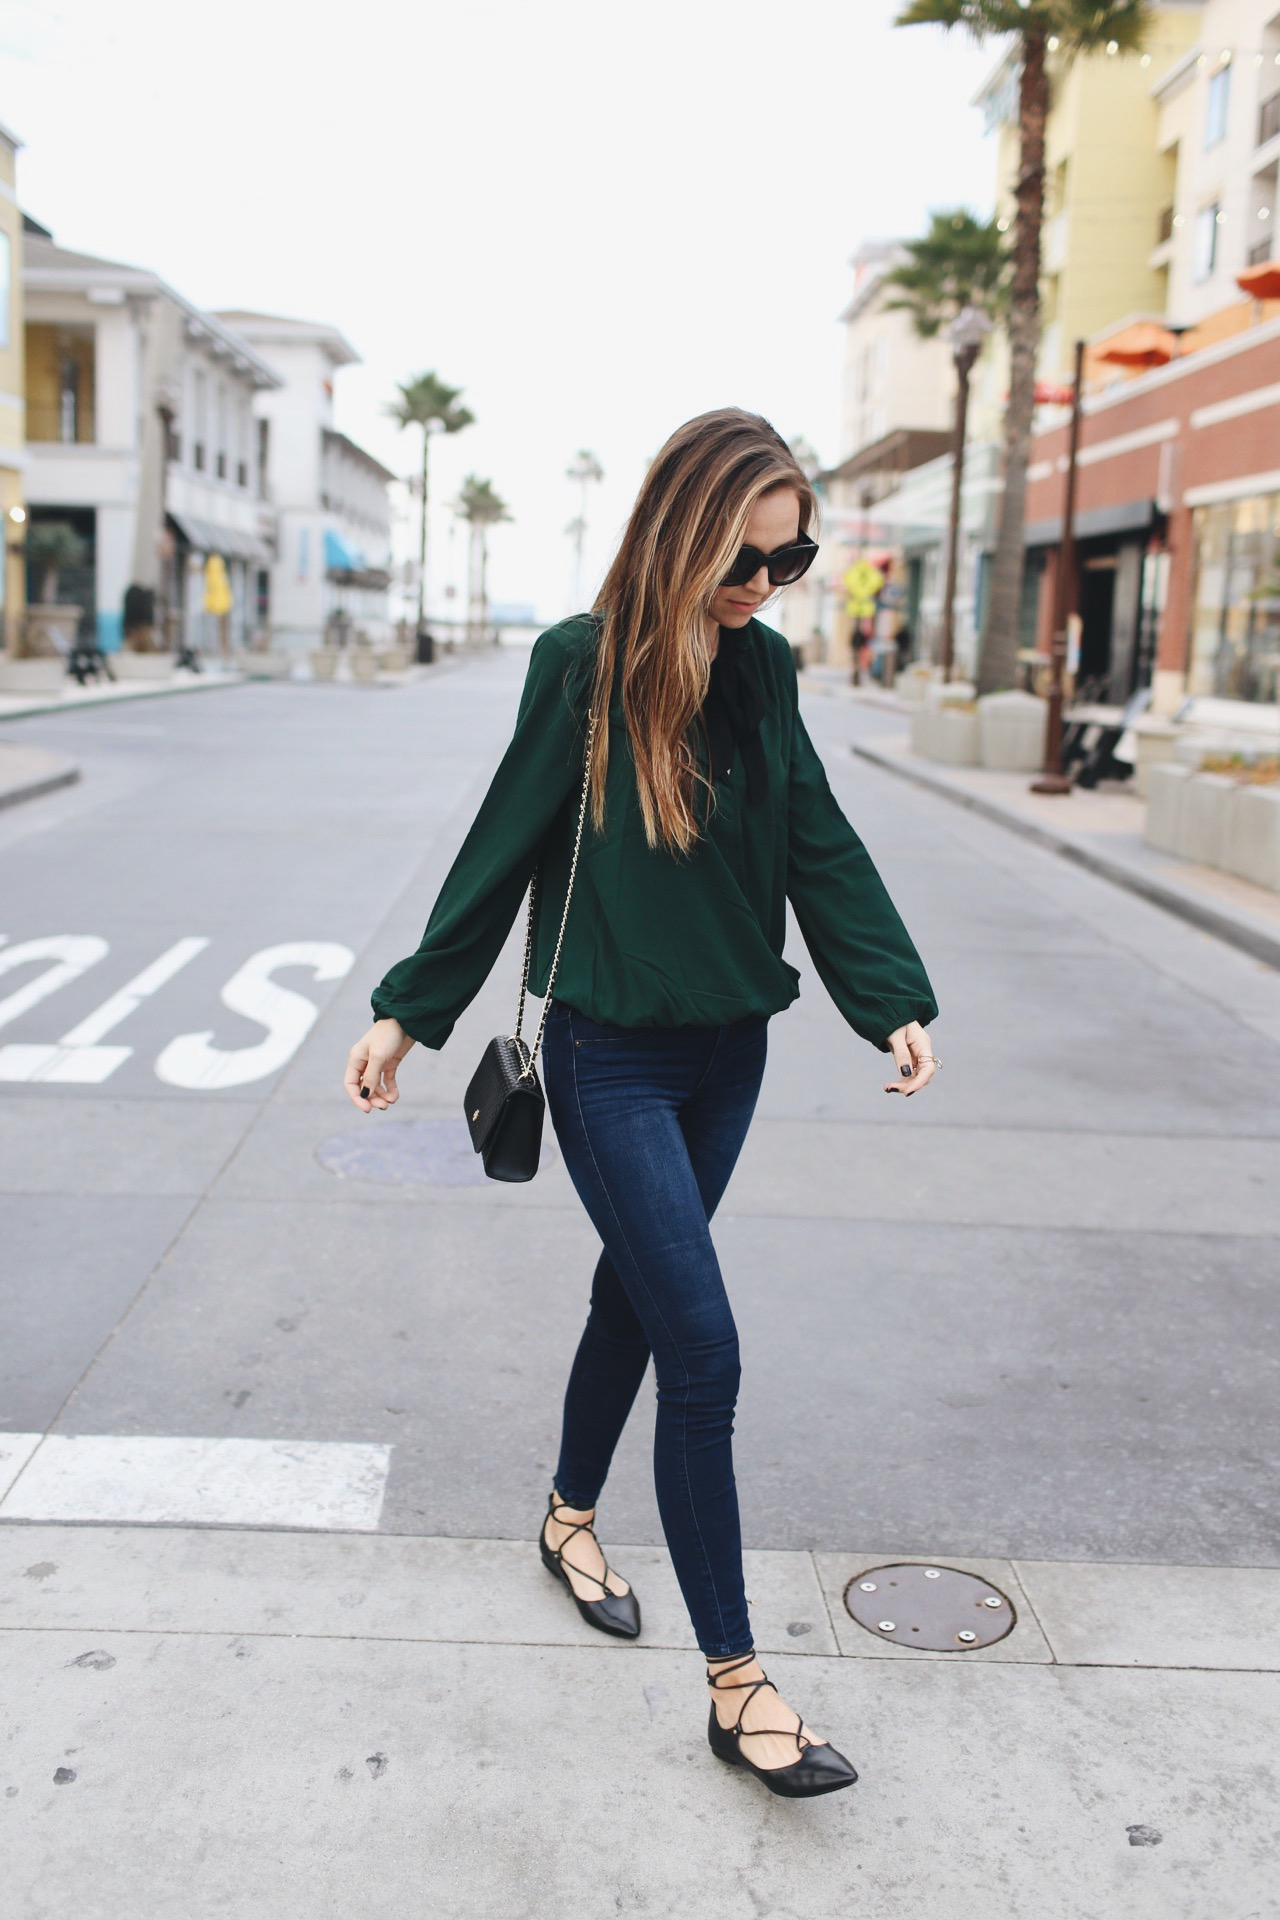 Merrick's Art | Green Top and Lace Up Flats